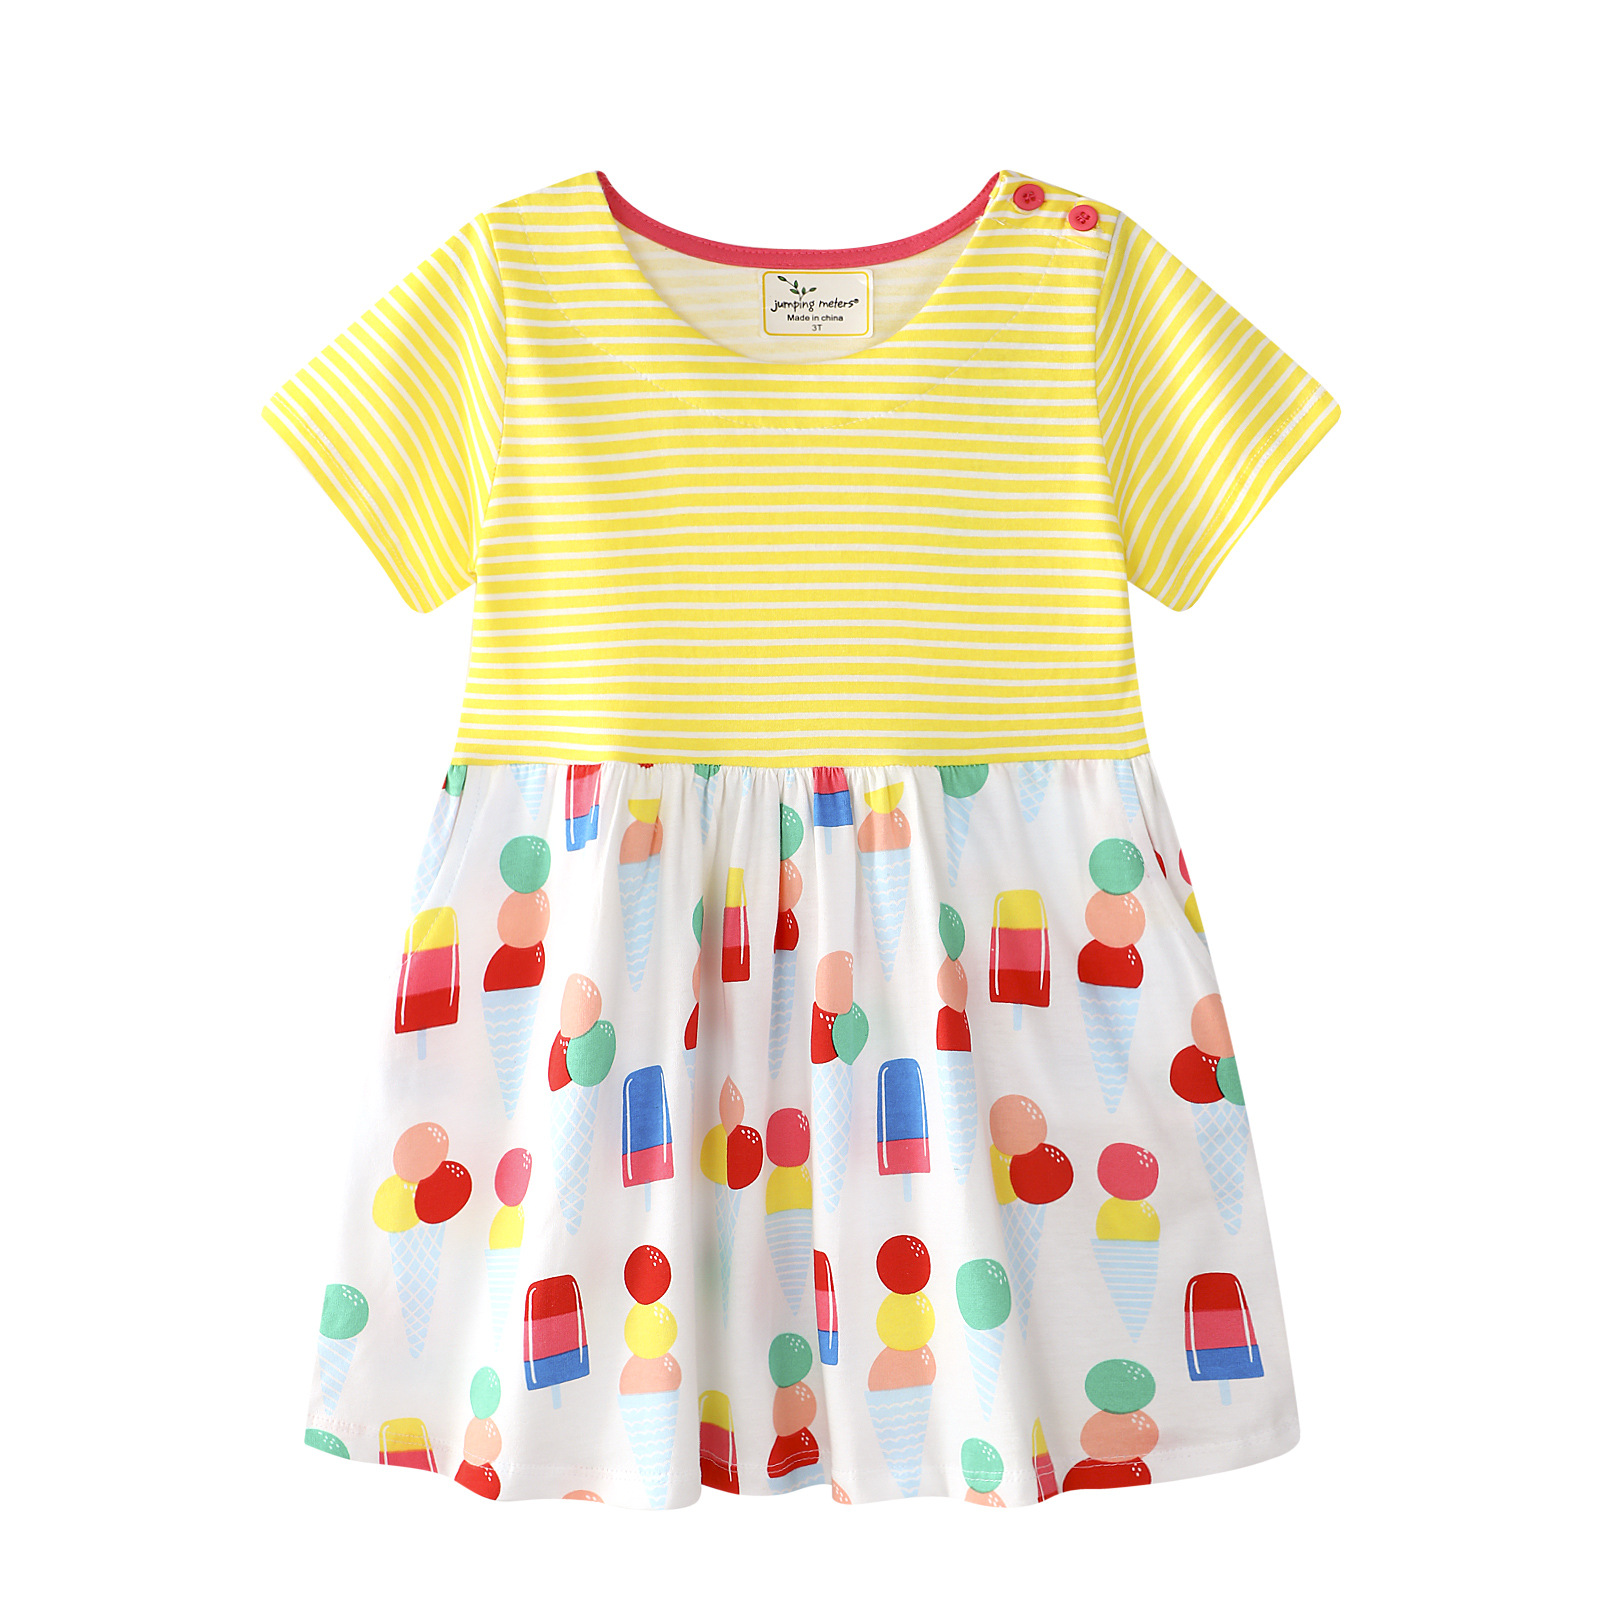 2018 Cotton Party Dresses for Girls Clothes Brand Summer Baby Girl